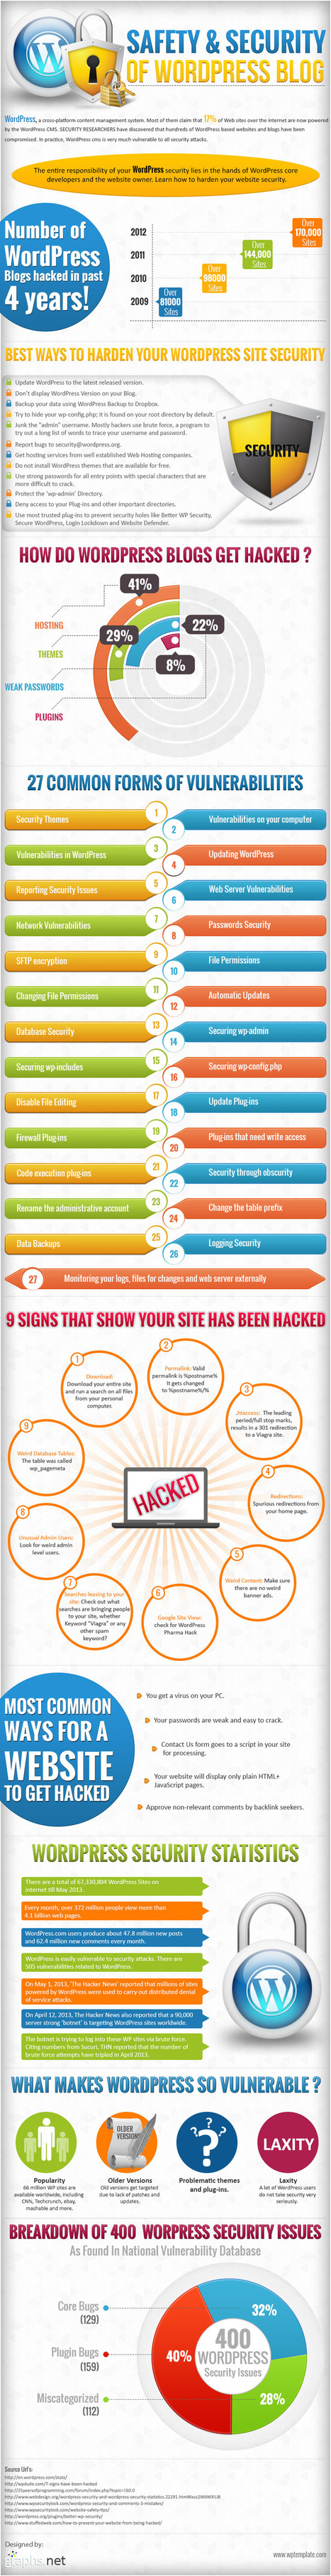 Safety and Security of WordPress Blog (Infographic) | IKT och iPad i undervisningen | Scoop.it